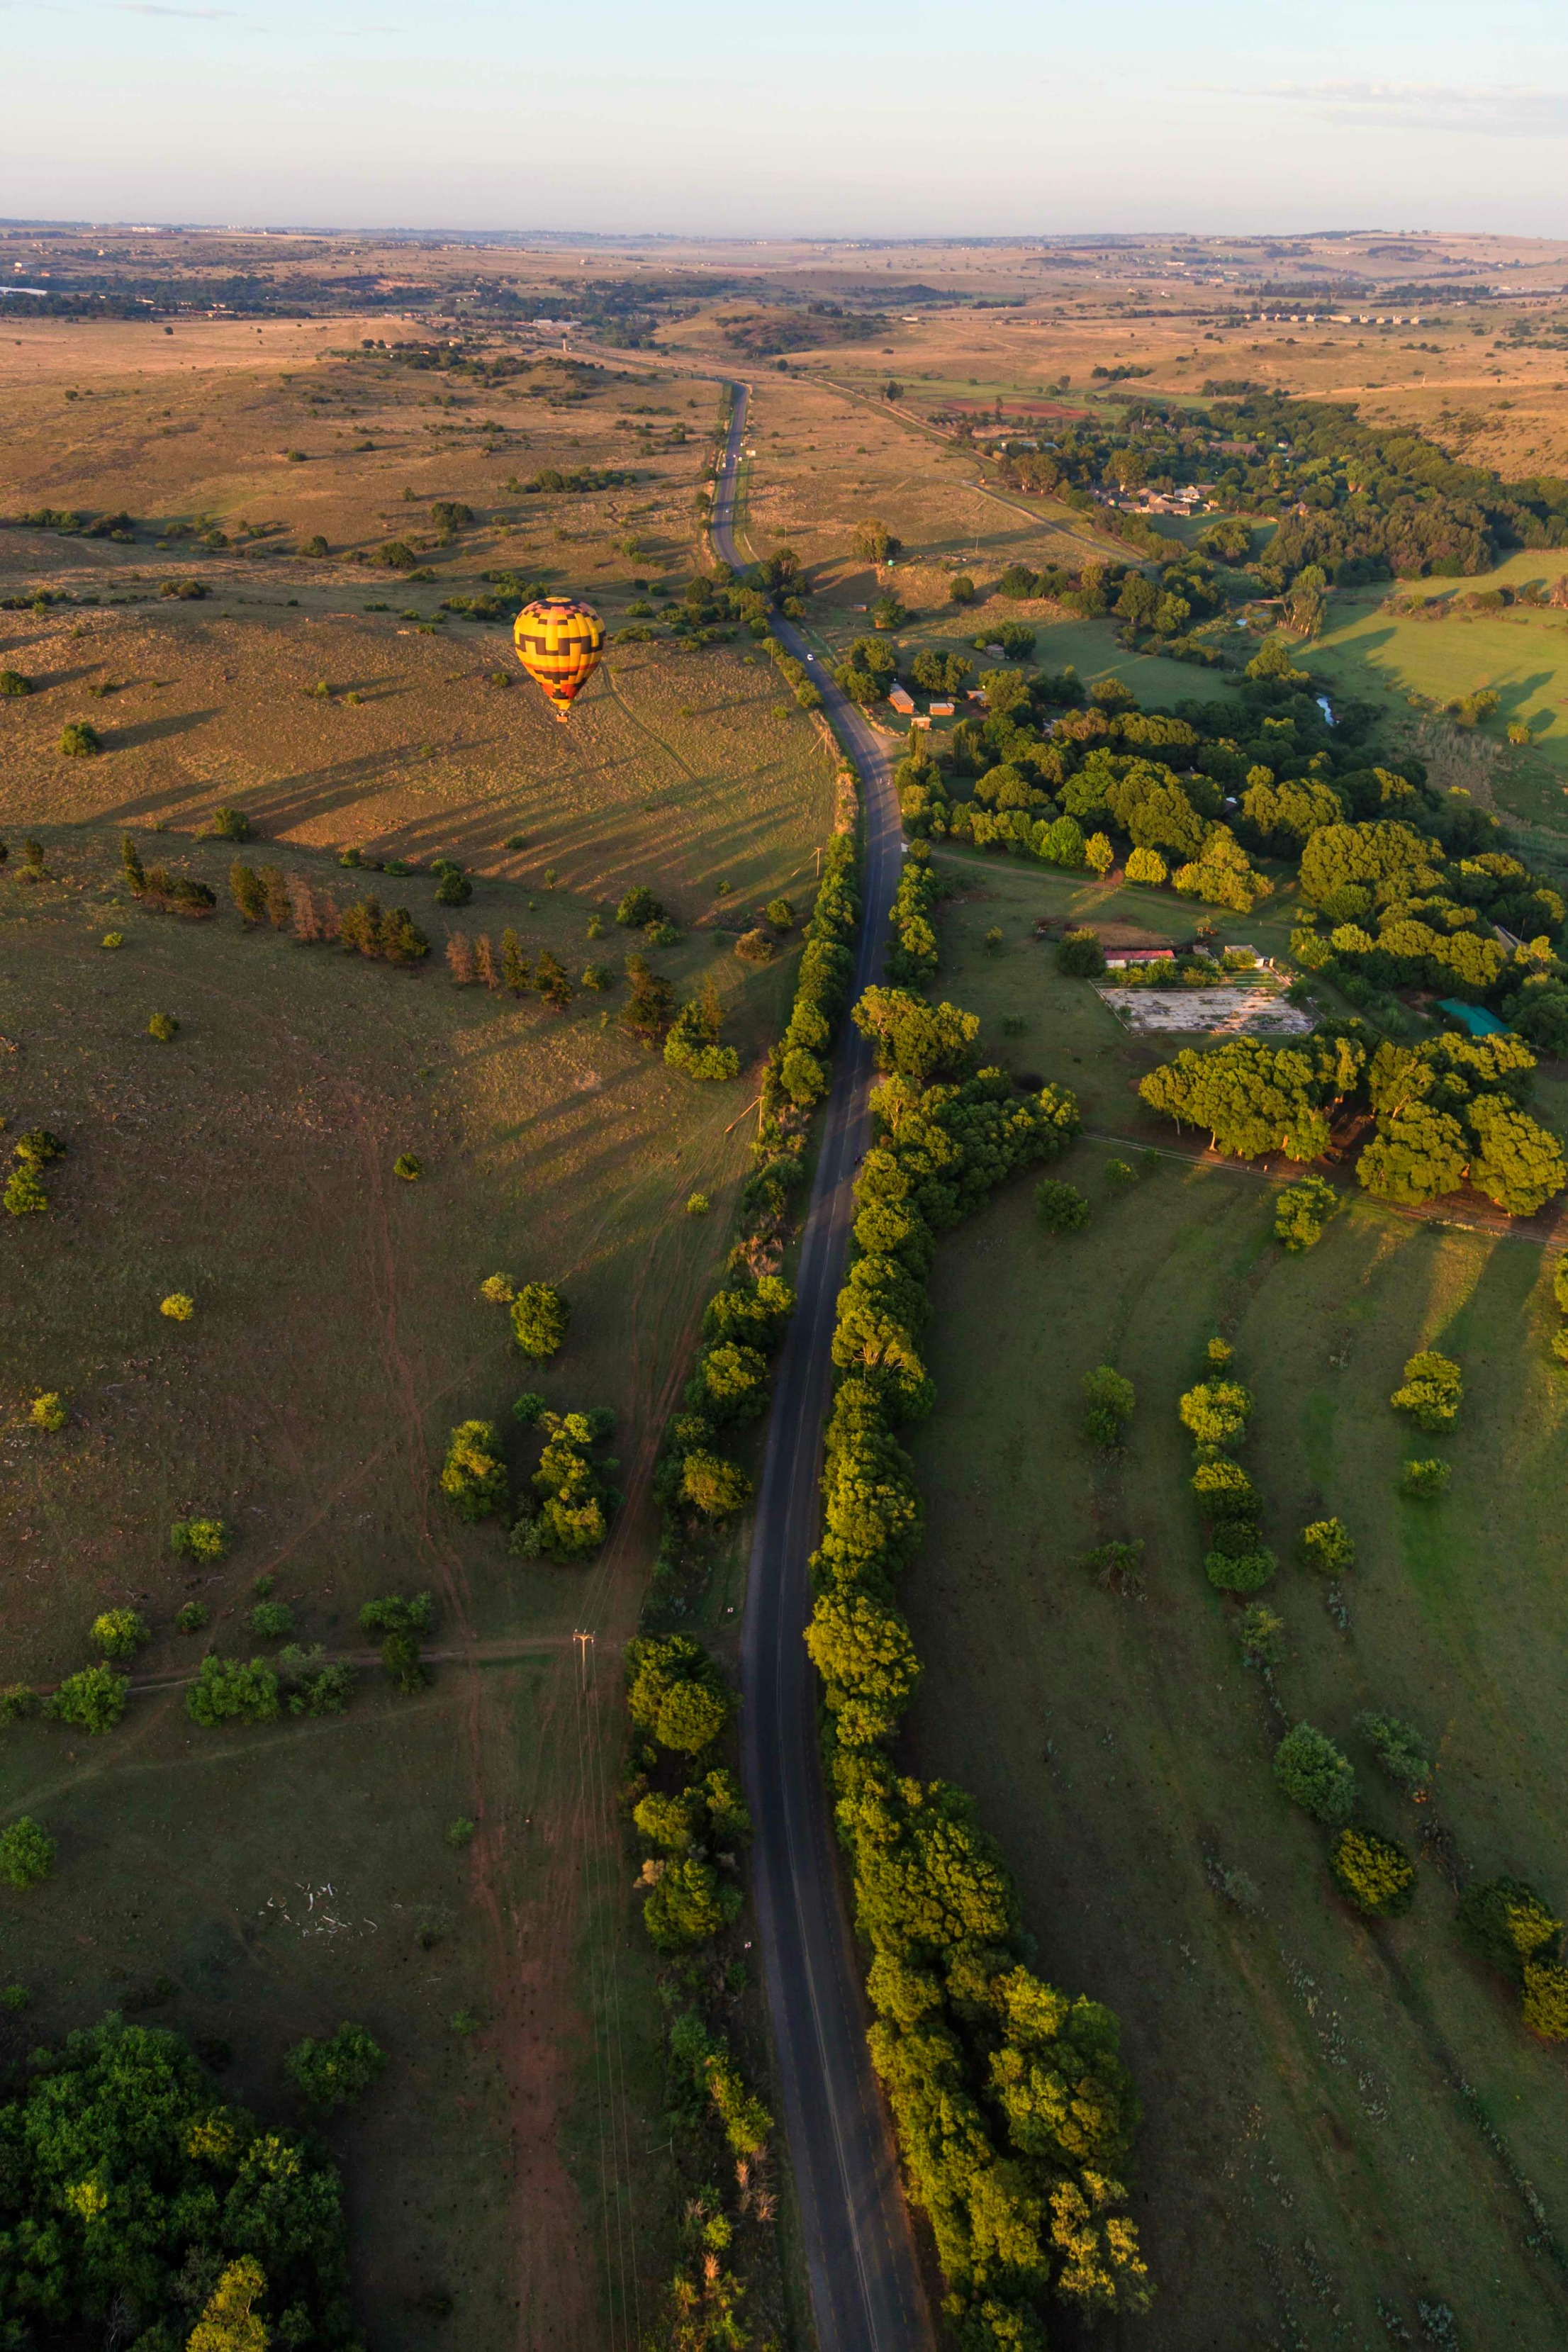 balloon-ride-at-krugers-national-park-courtesy-of-air-ventures_jozi-with-google_tembea-na-kaluhi